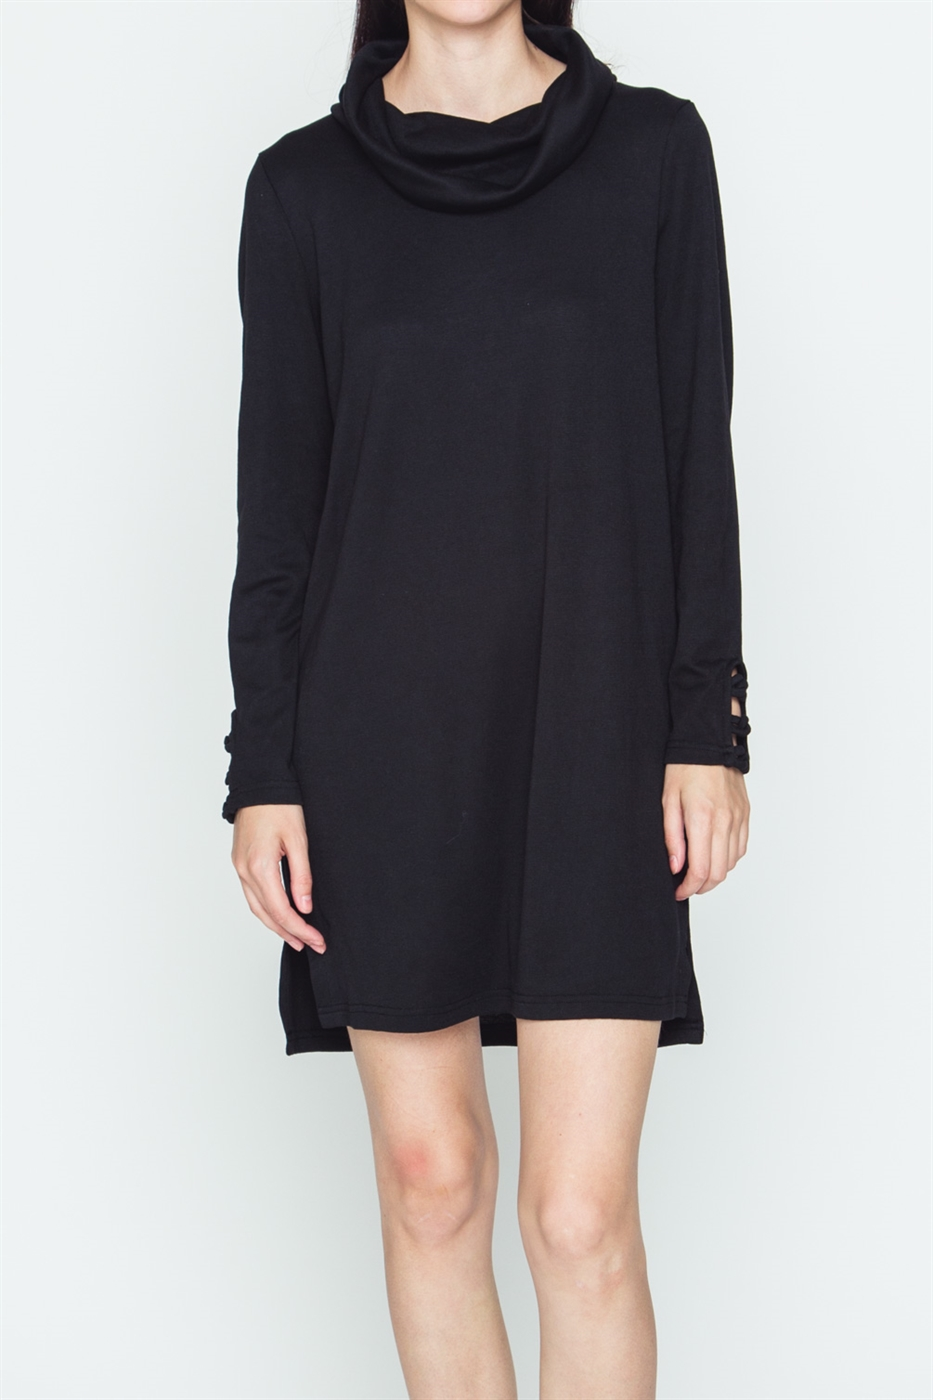 TURTLE NECK LONG SLEEVE DRESS - orangeshine.com